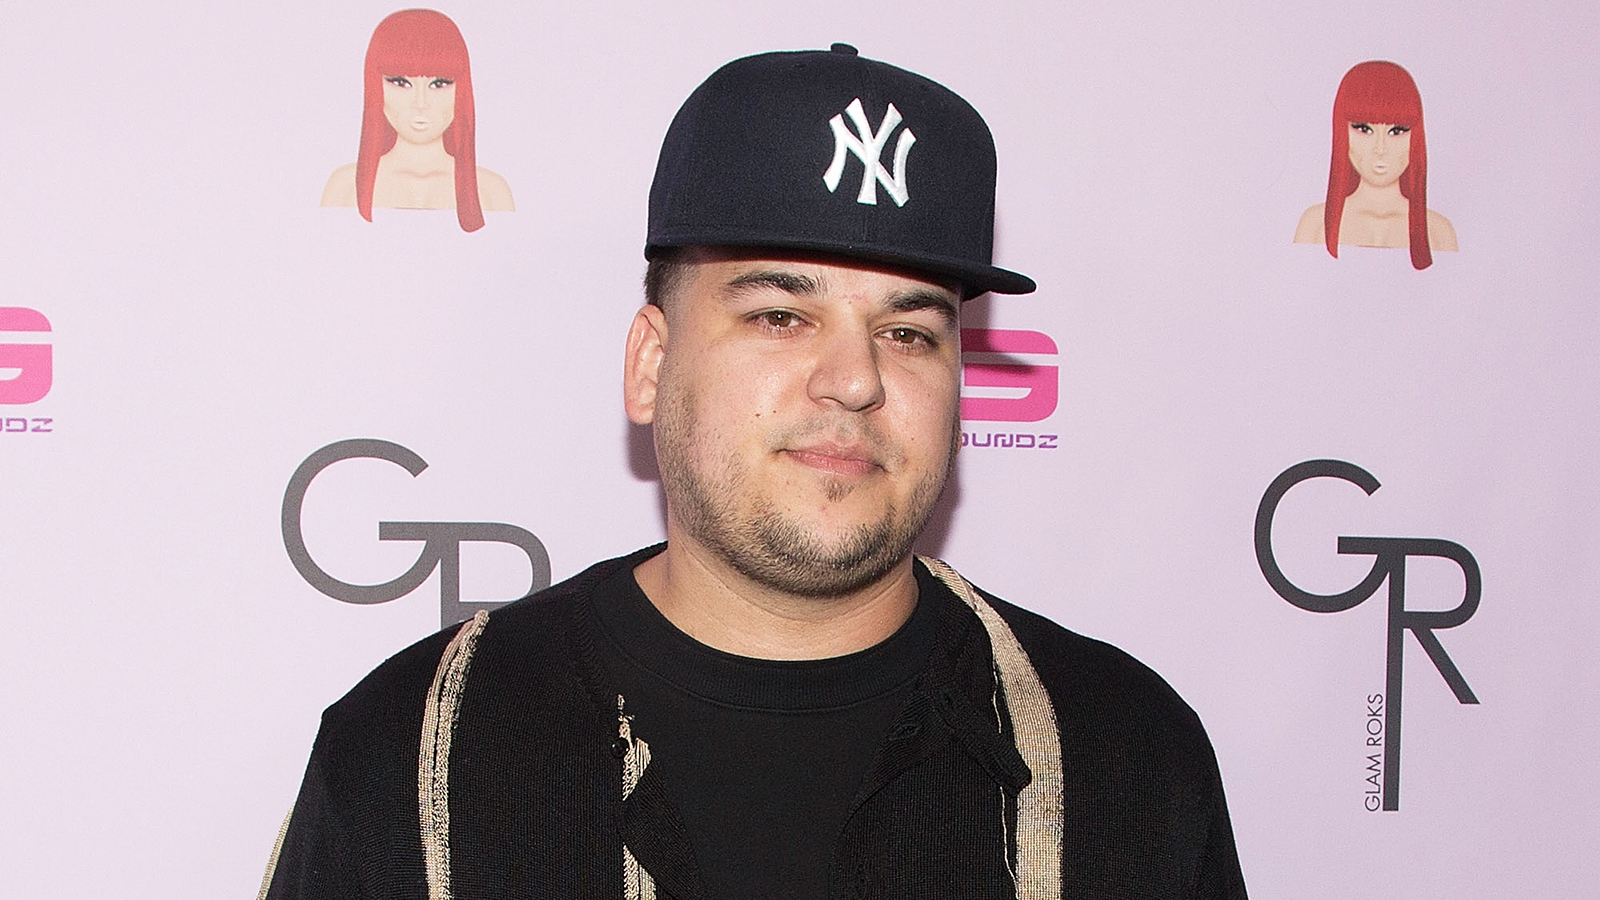 Rob Kardashian Slammed for Saying He's 'Proud' of His Father's New Cancer Center, Despite Skipping Event